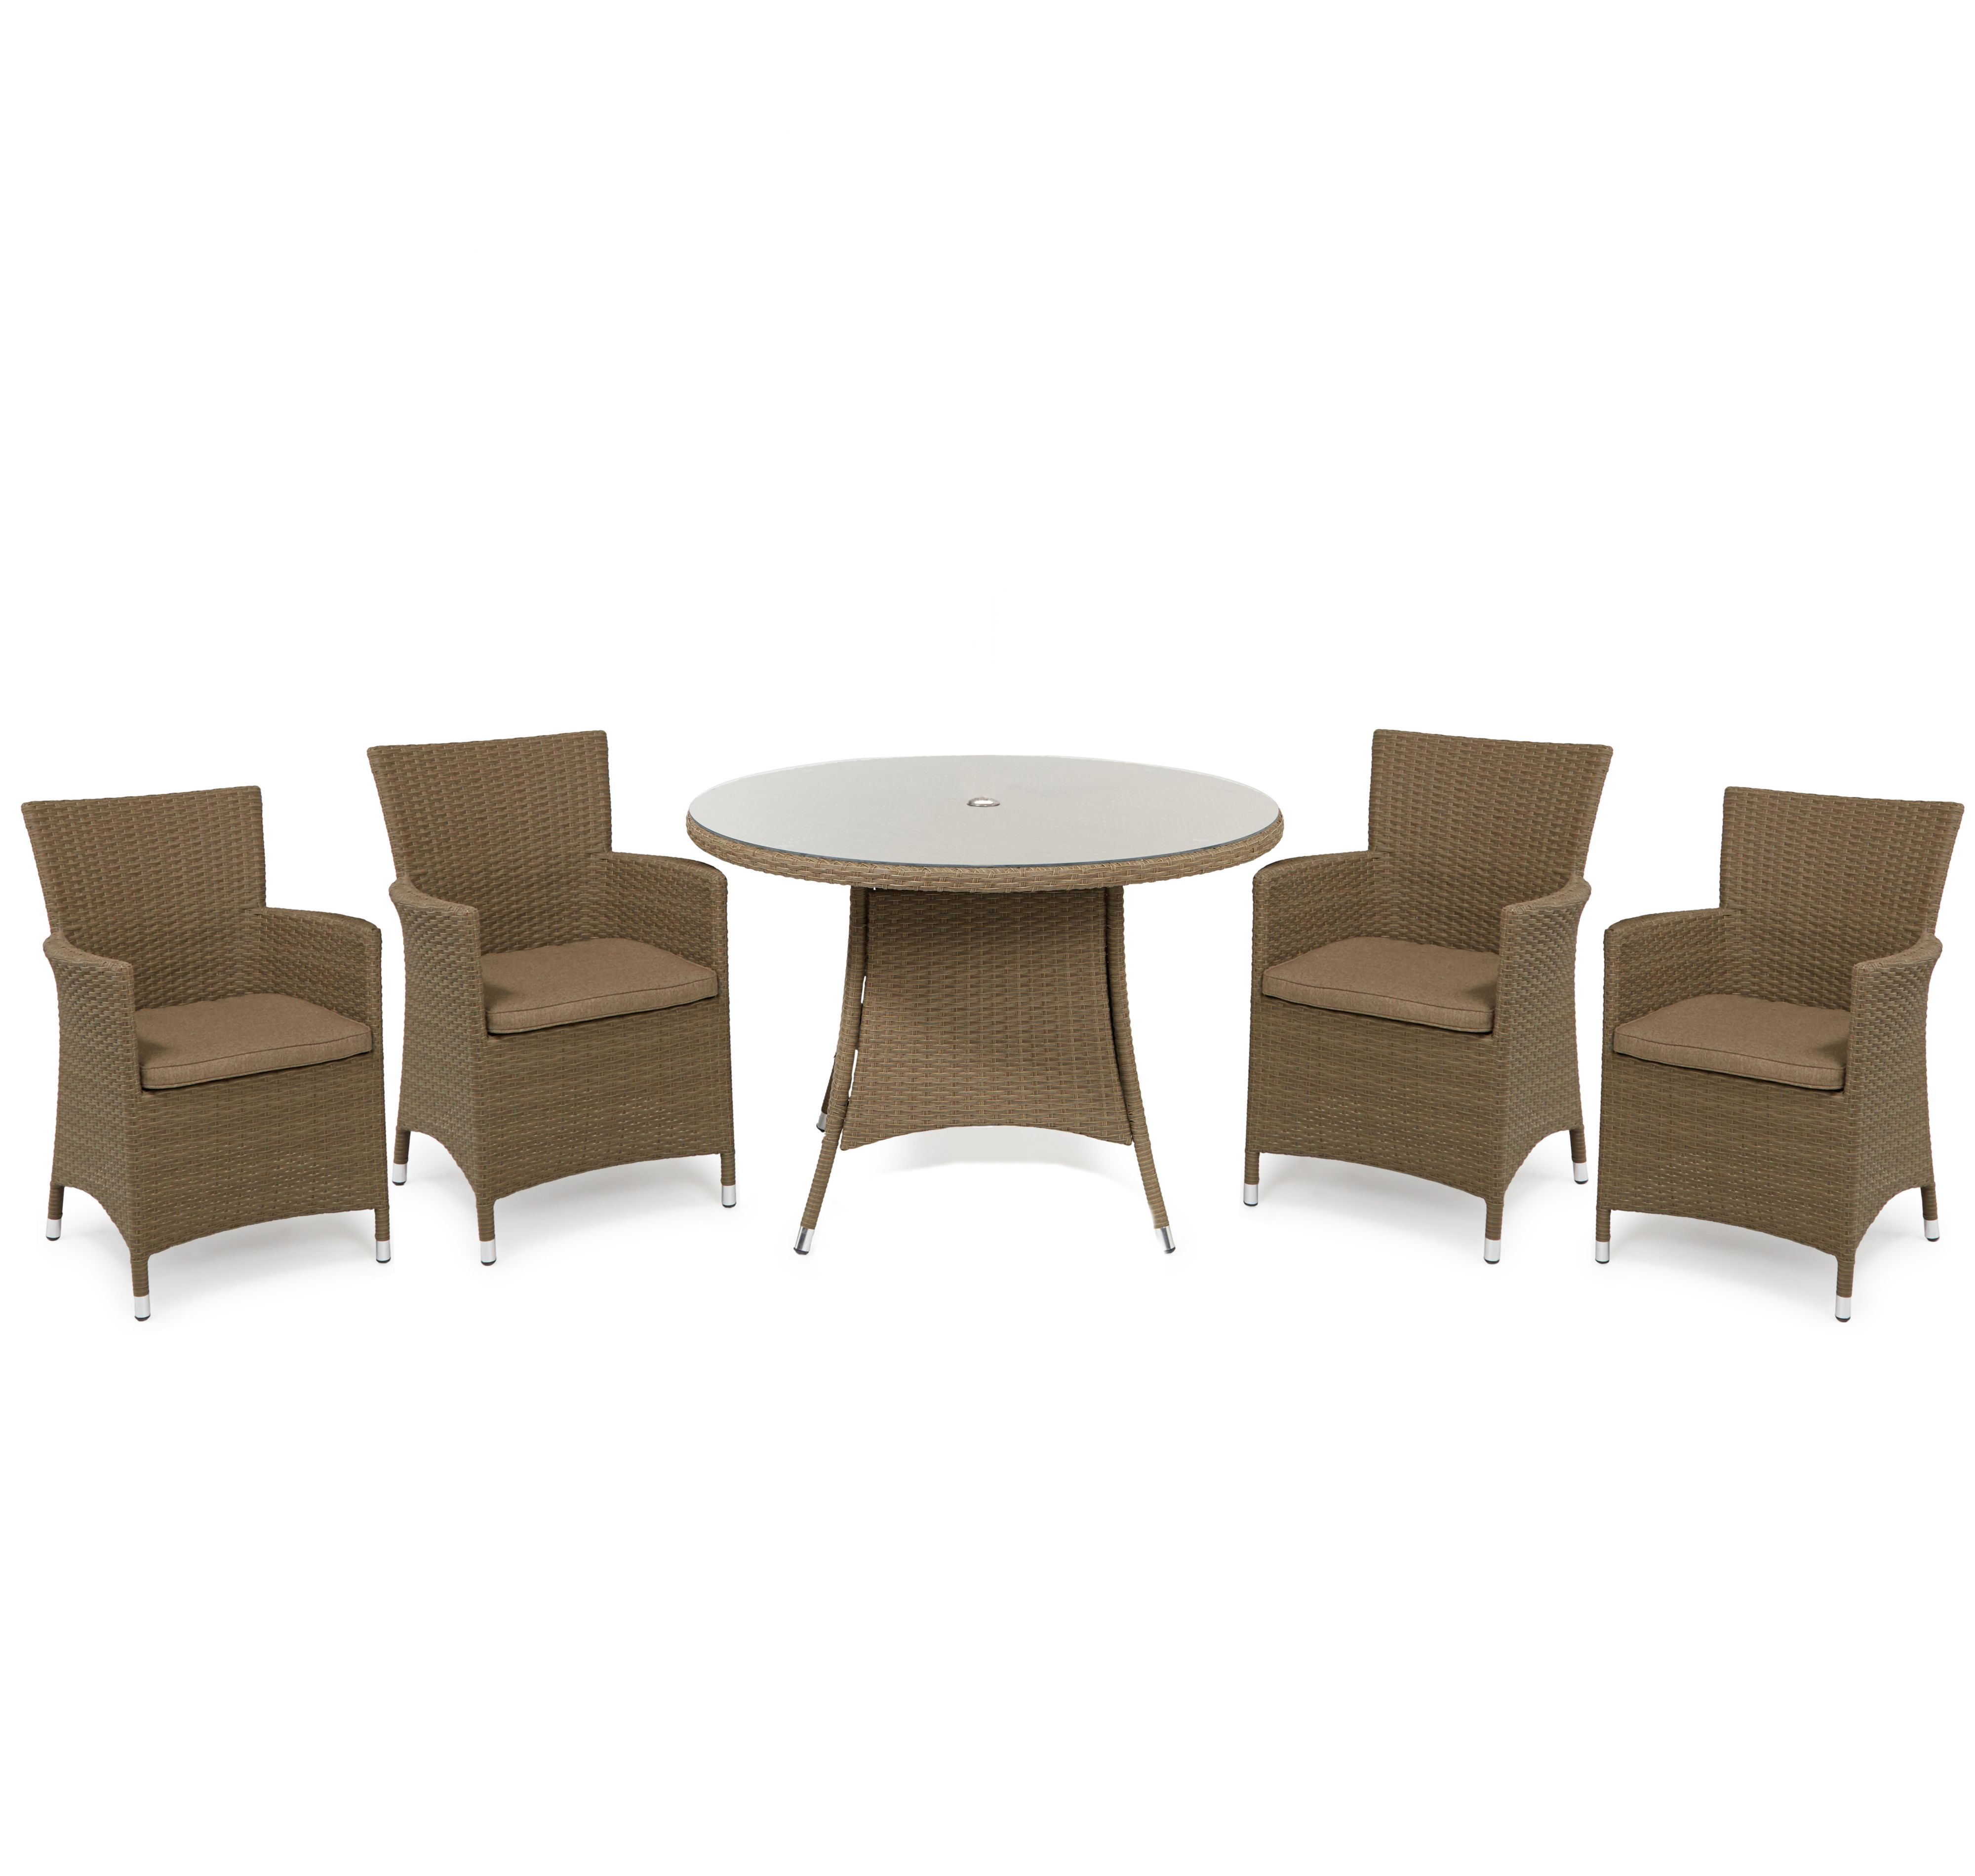 Henley Rattan Effect 4 Seater Dining Set Departments Diy At B Q